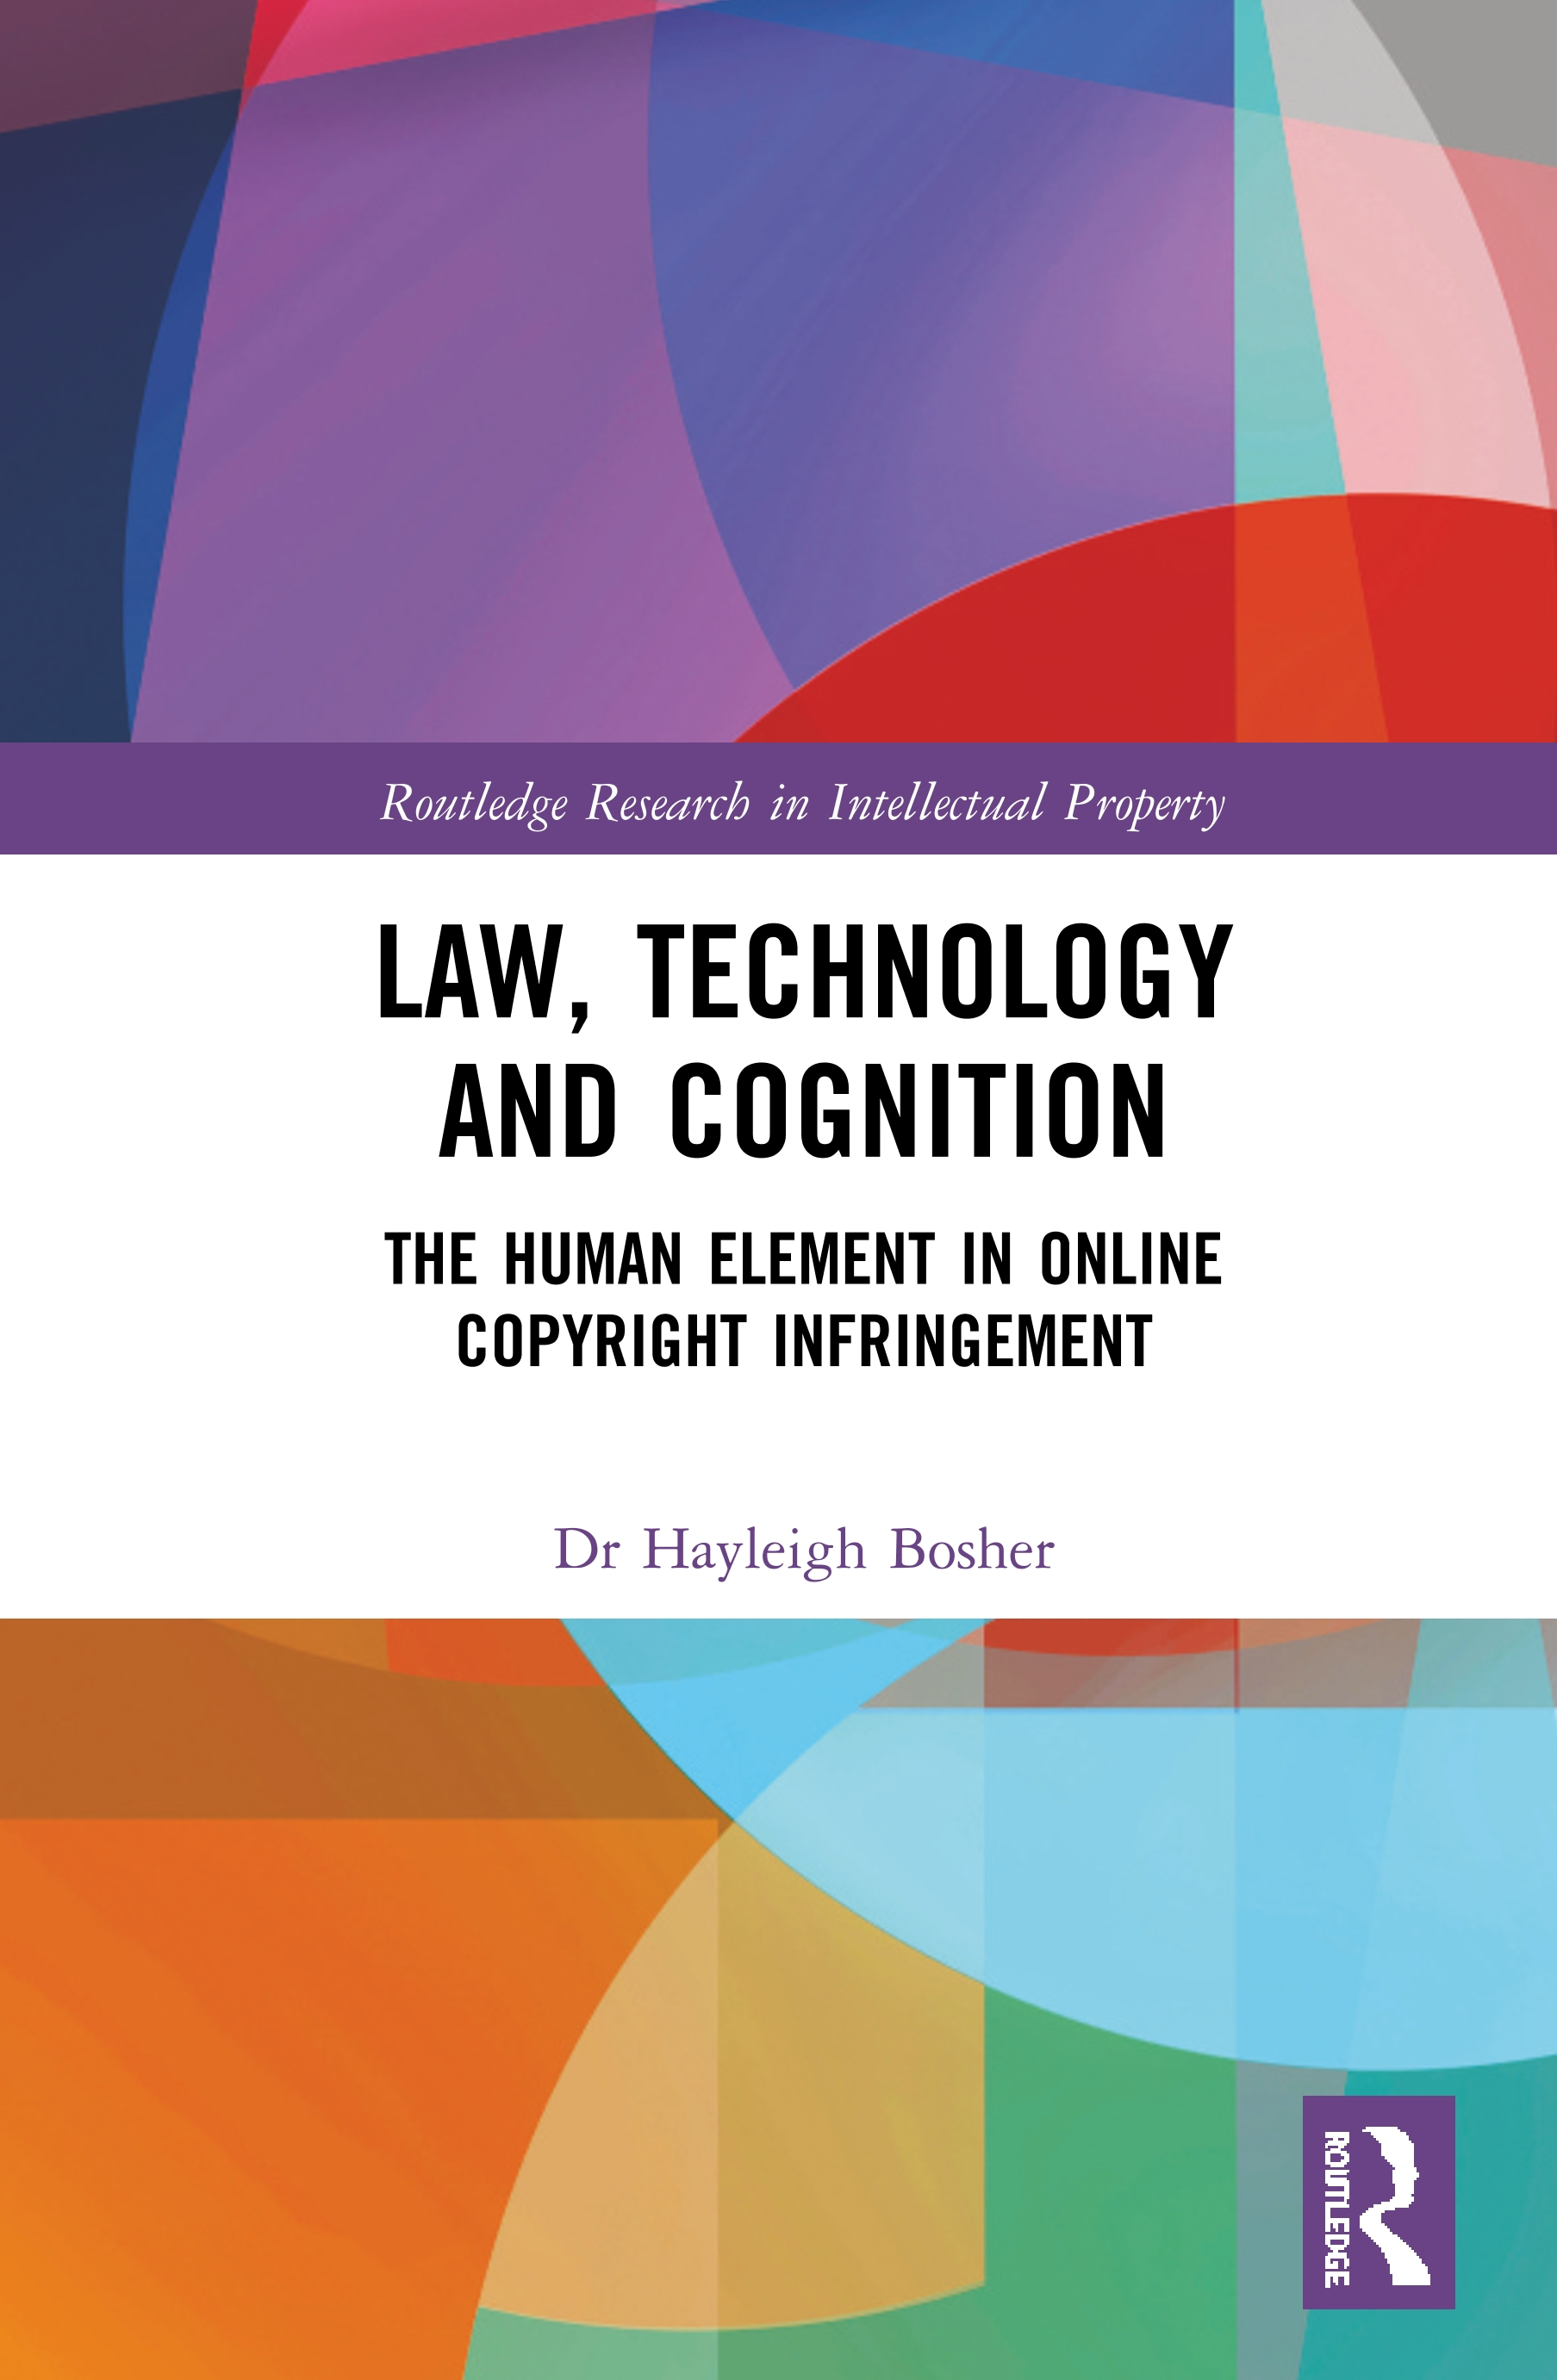 Law, Technology and Cognition: The Human Element in Online Copyright Infringement book cover